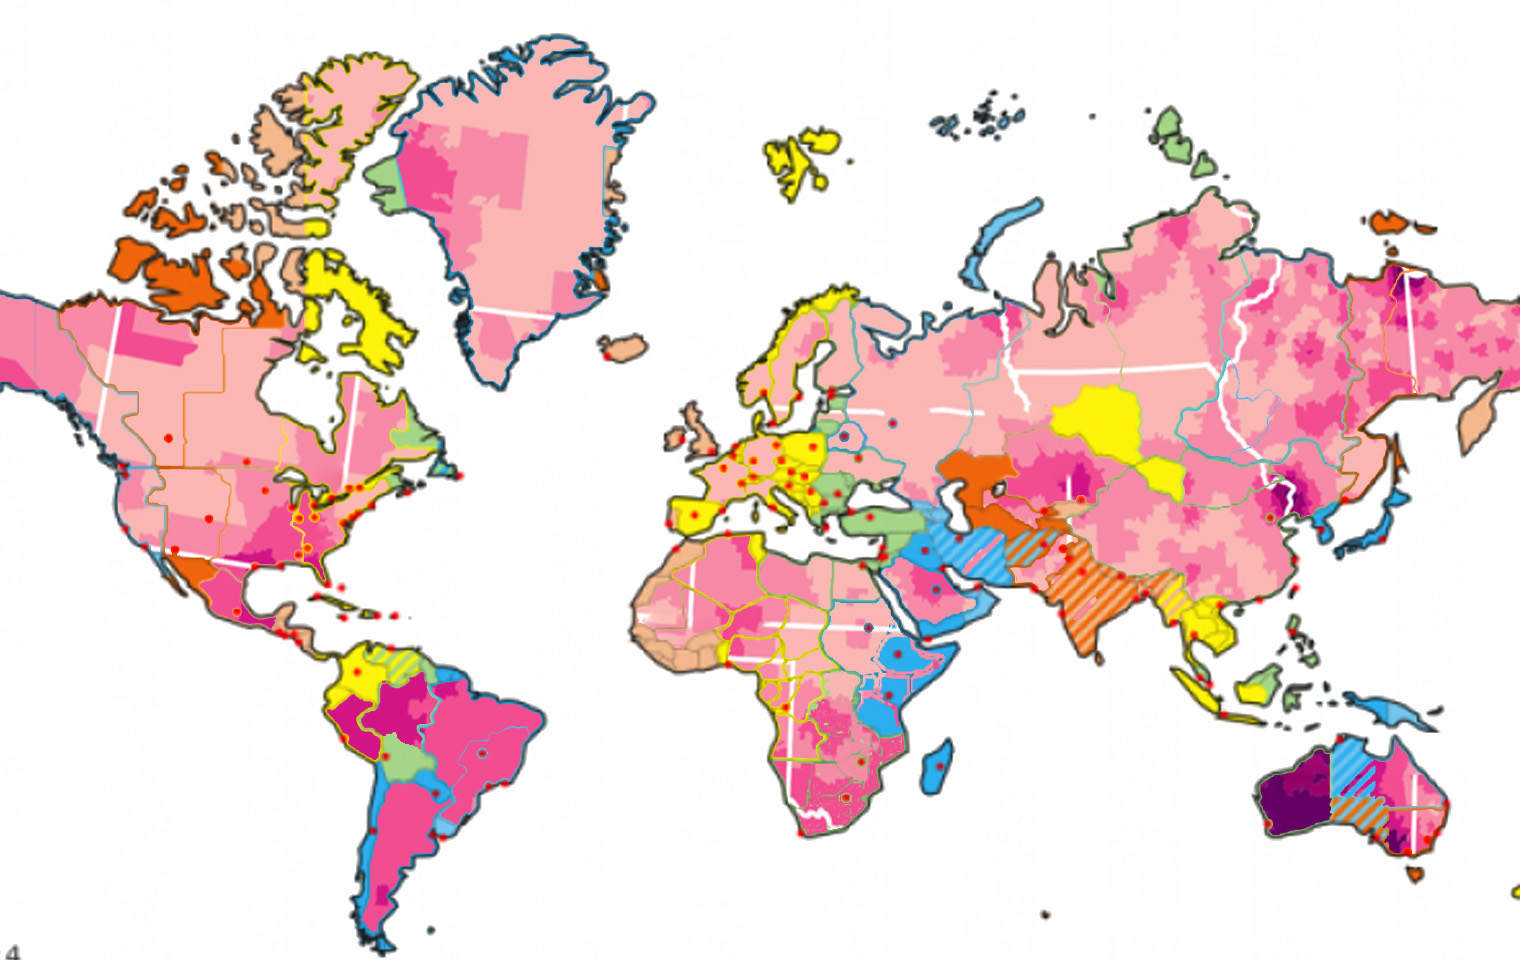 us-map-divided-by-population-us-map-divided-by-population-empire-full.jpg